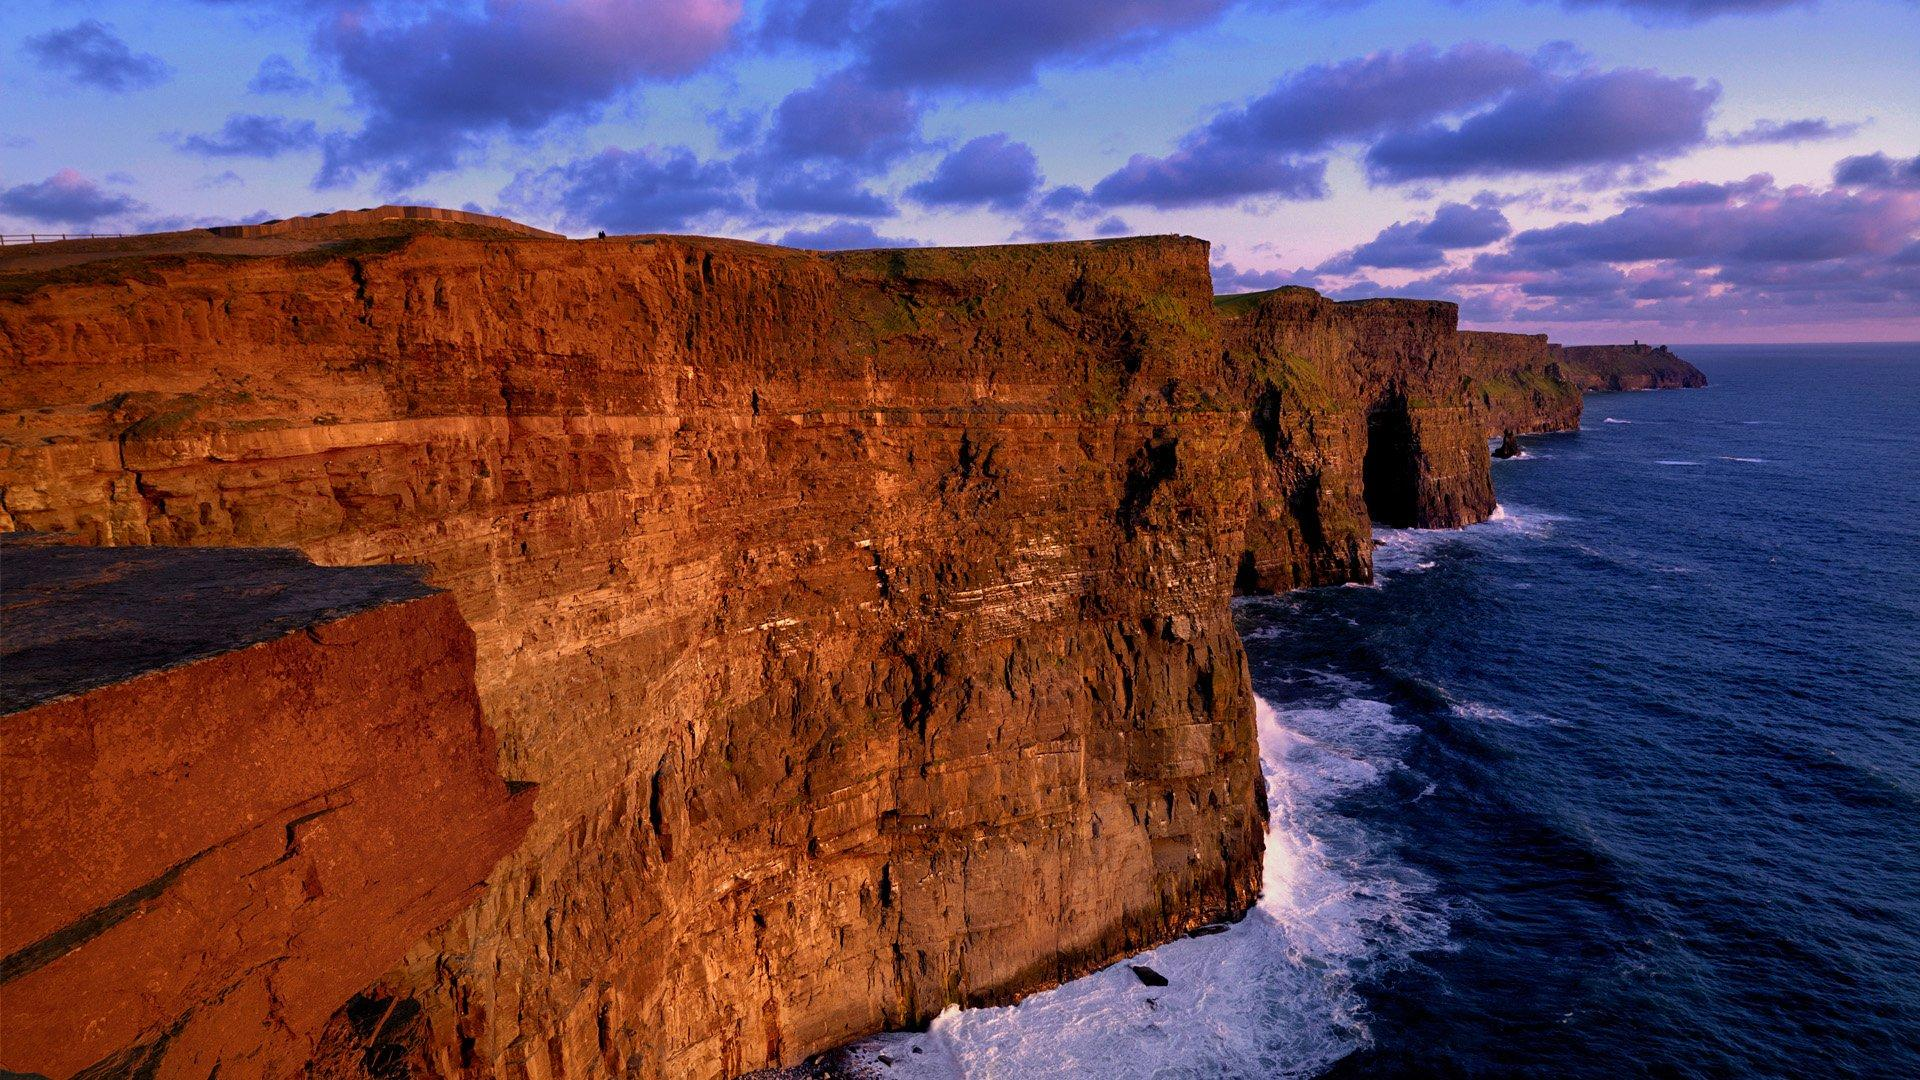 Sunset at the Cliffs of Moher, Ireland HD Wallpaper | Background ...